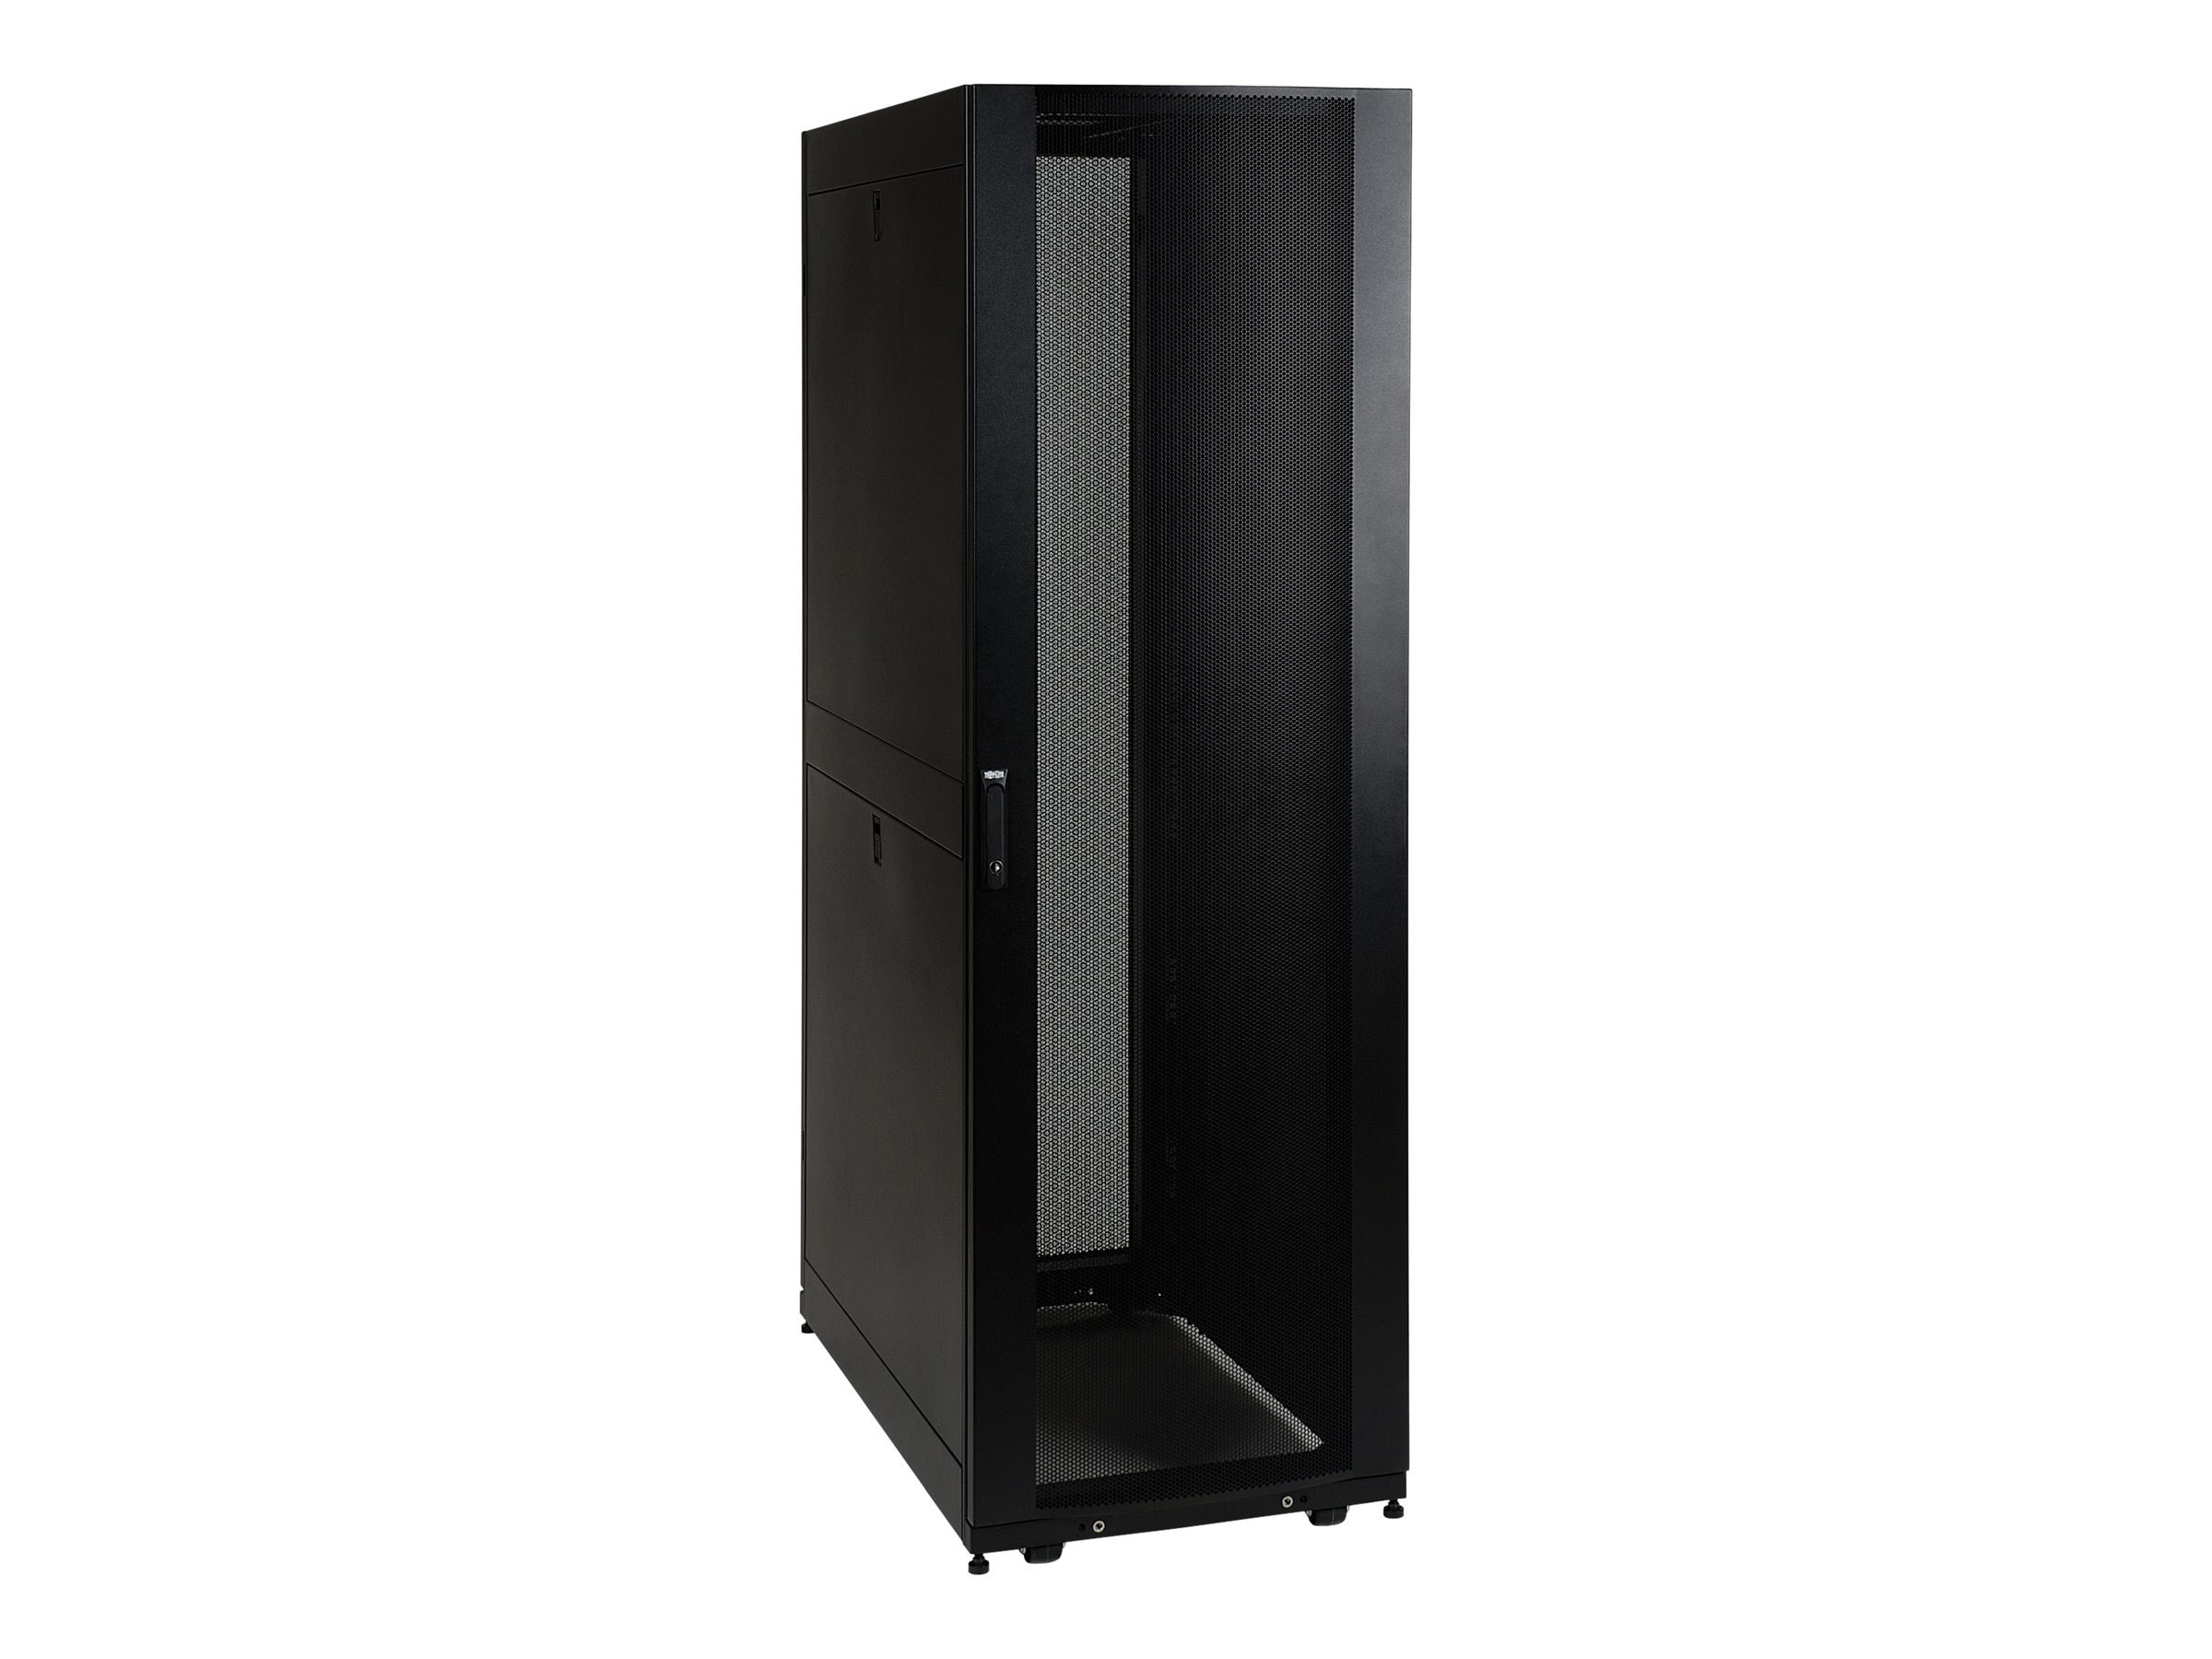 Tripp Lite 42U Rack Enclosure Server Cabinet, Instant Rebate - Save $75